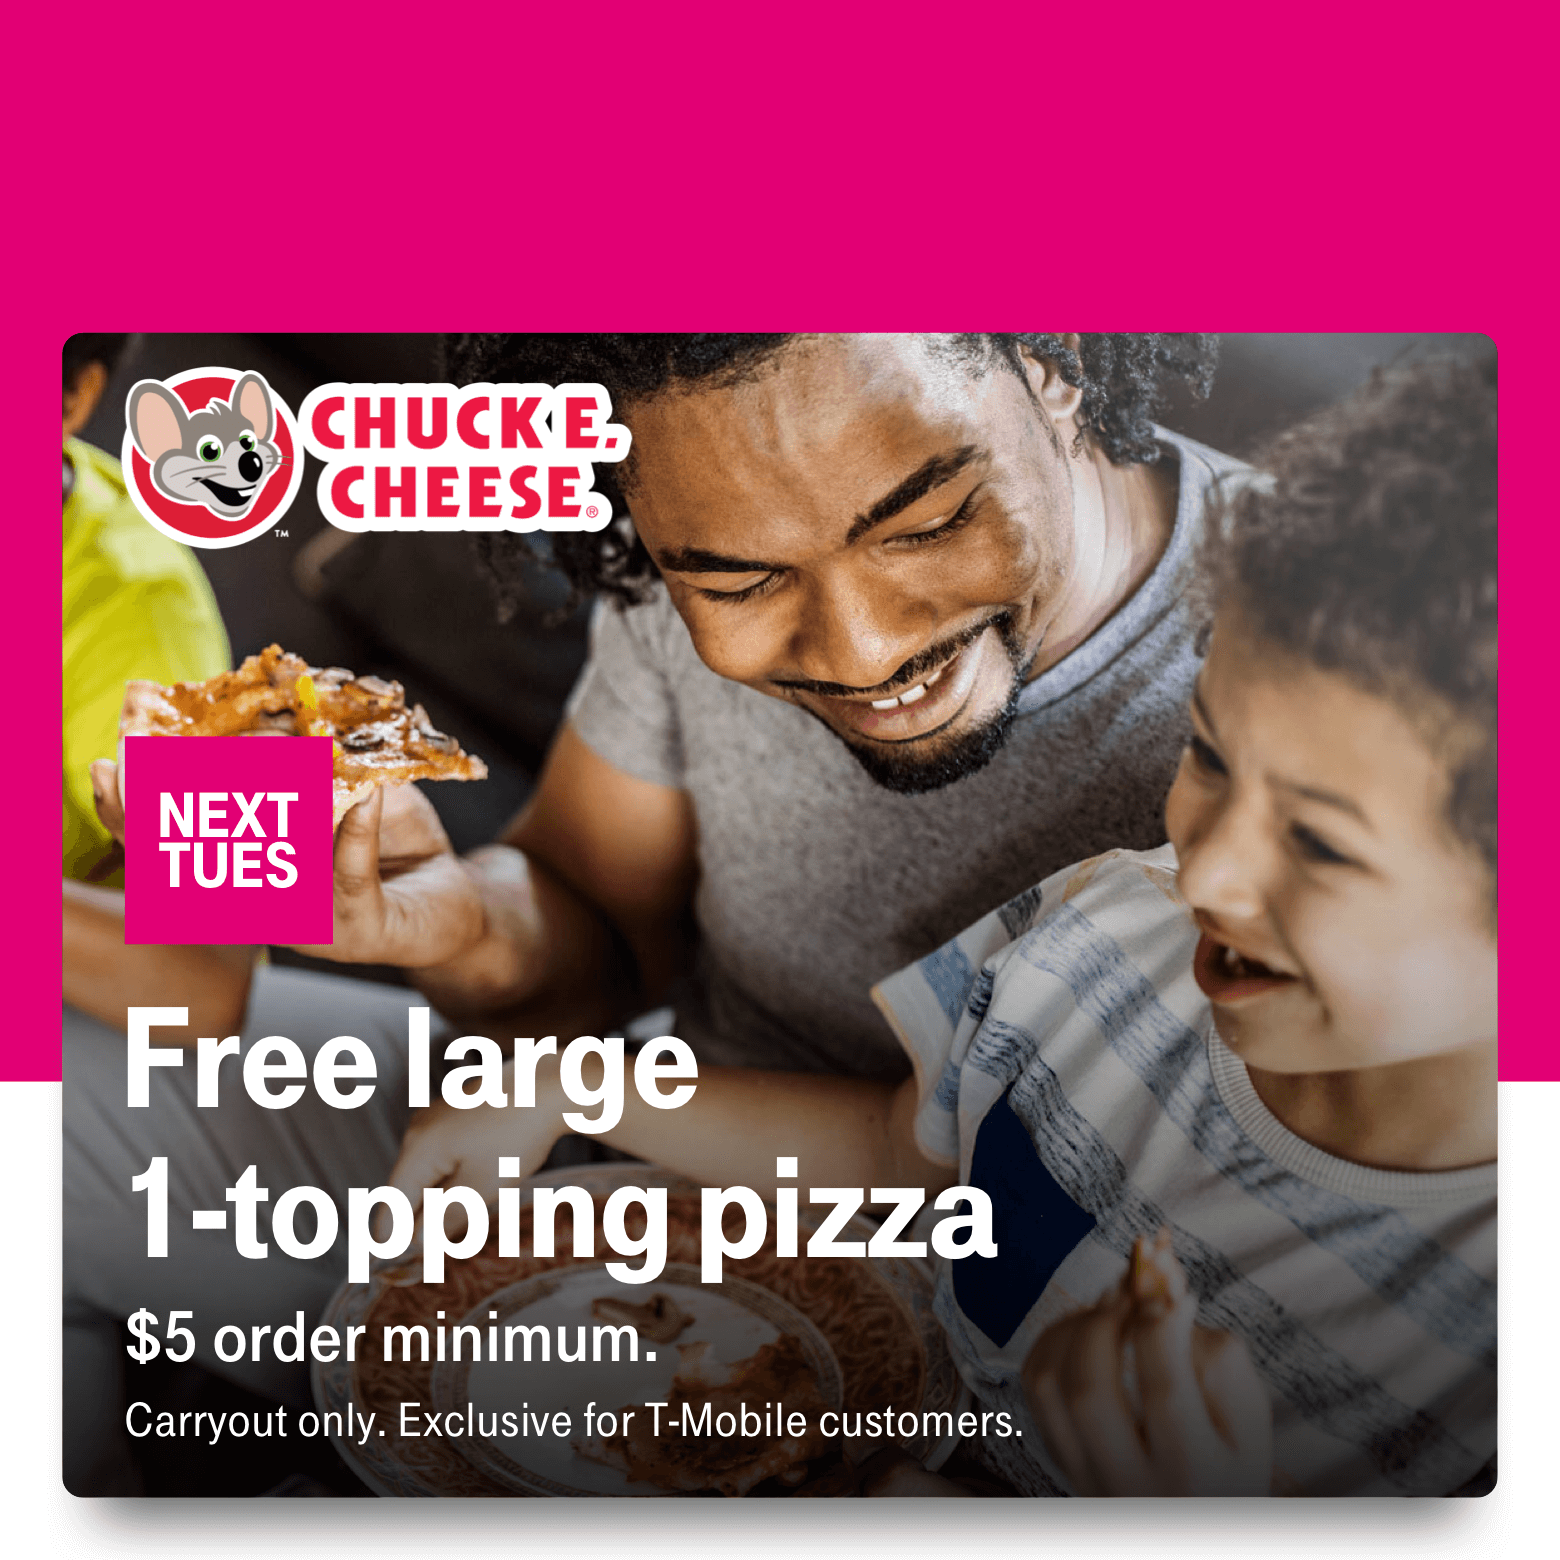 Chuck E. Cheese. Next Tuesday. Free large 1-topping pizza. $5 order minimum. Carryout only. Exclusive for T-Mobile customers.